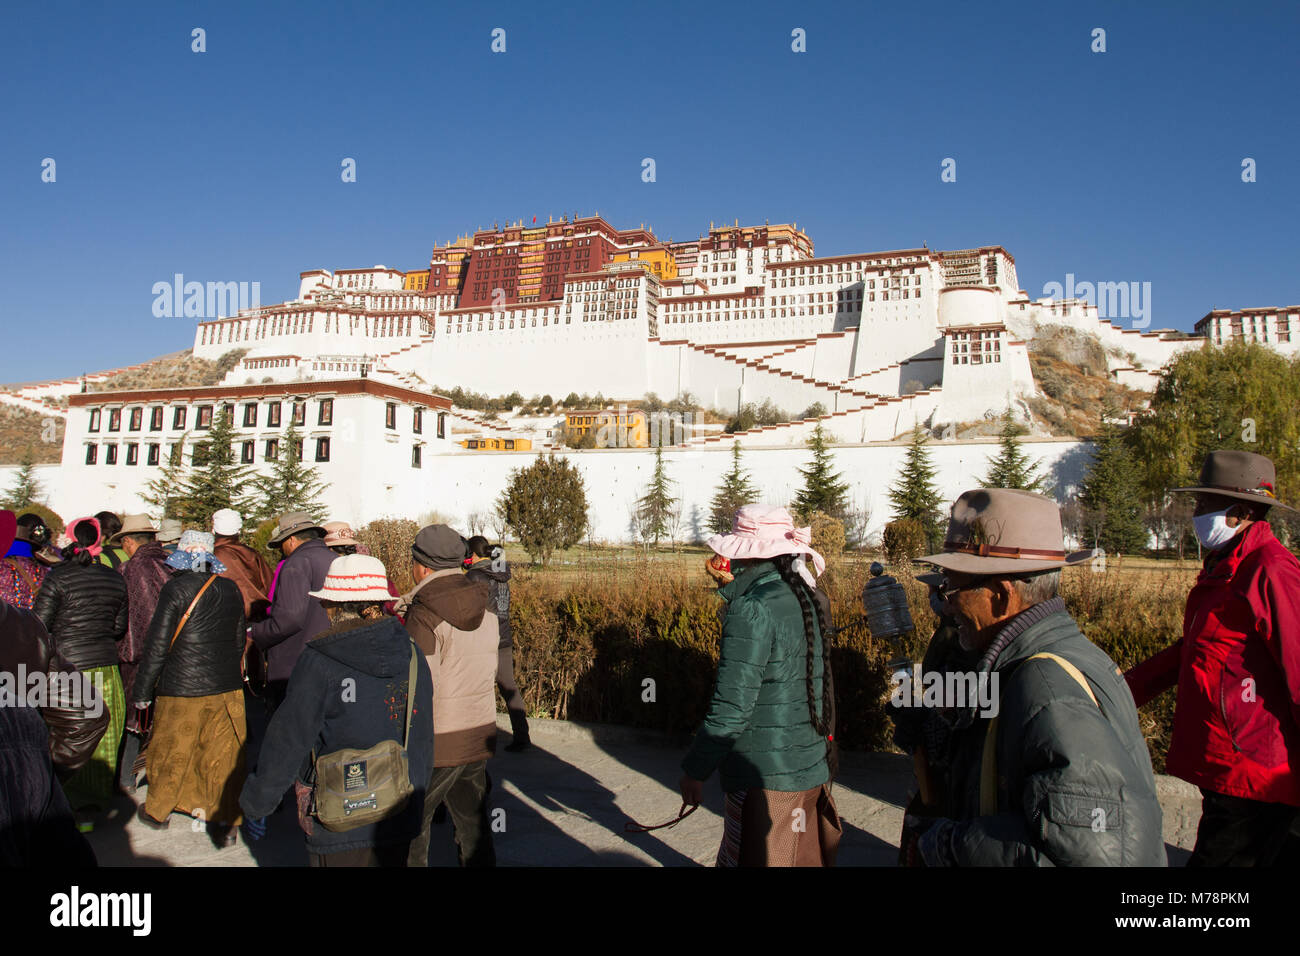 The Potala Palace of Lhasa, UNESCO World Heritage Site, Lhasa, Tibet, China, Asia - Stock Image